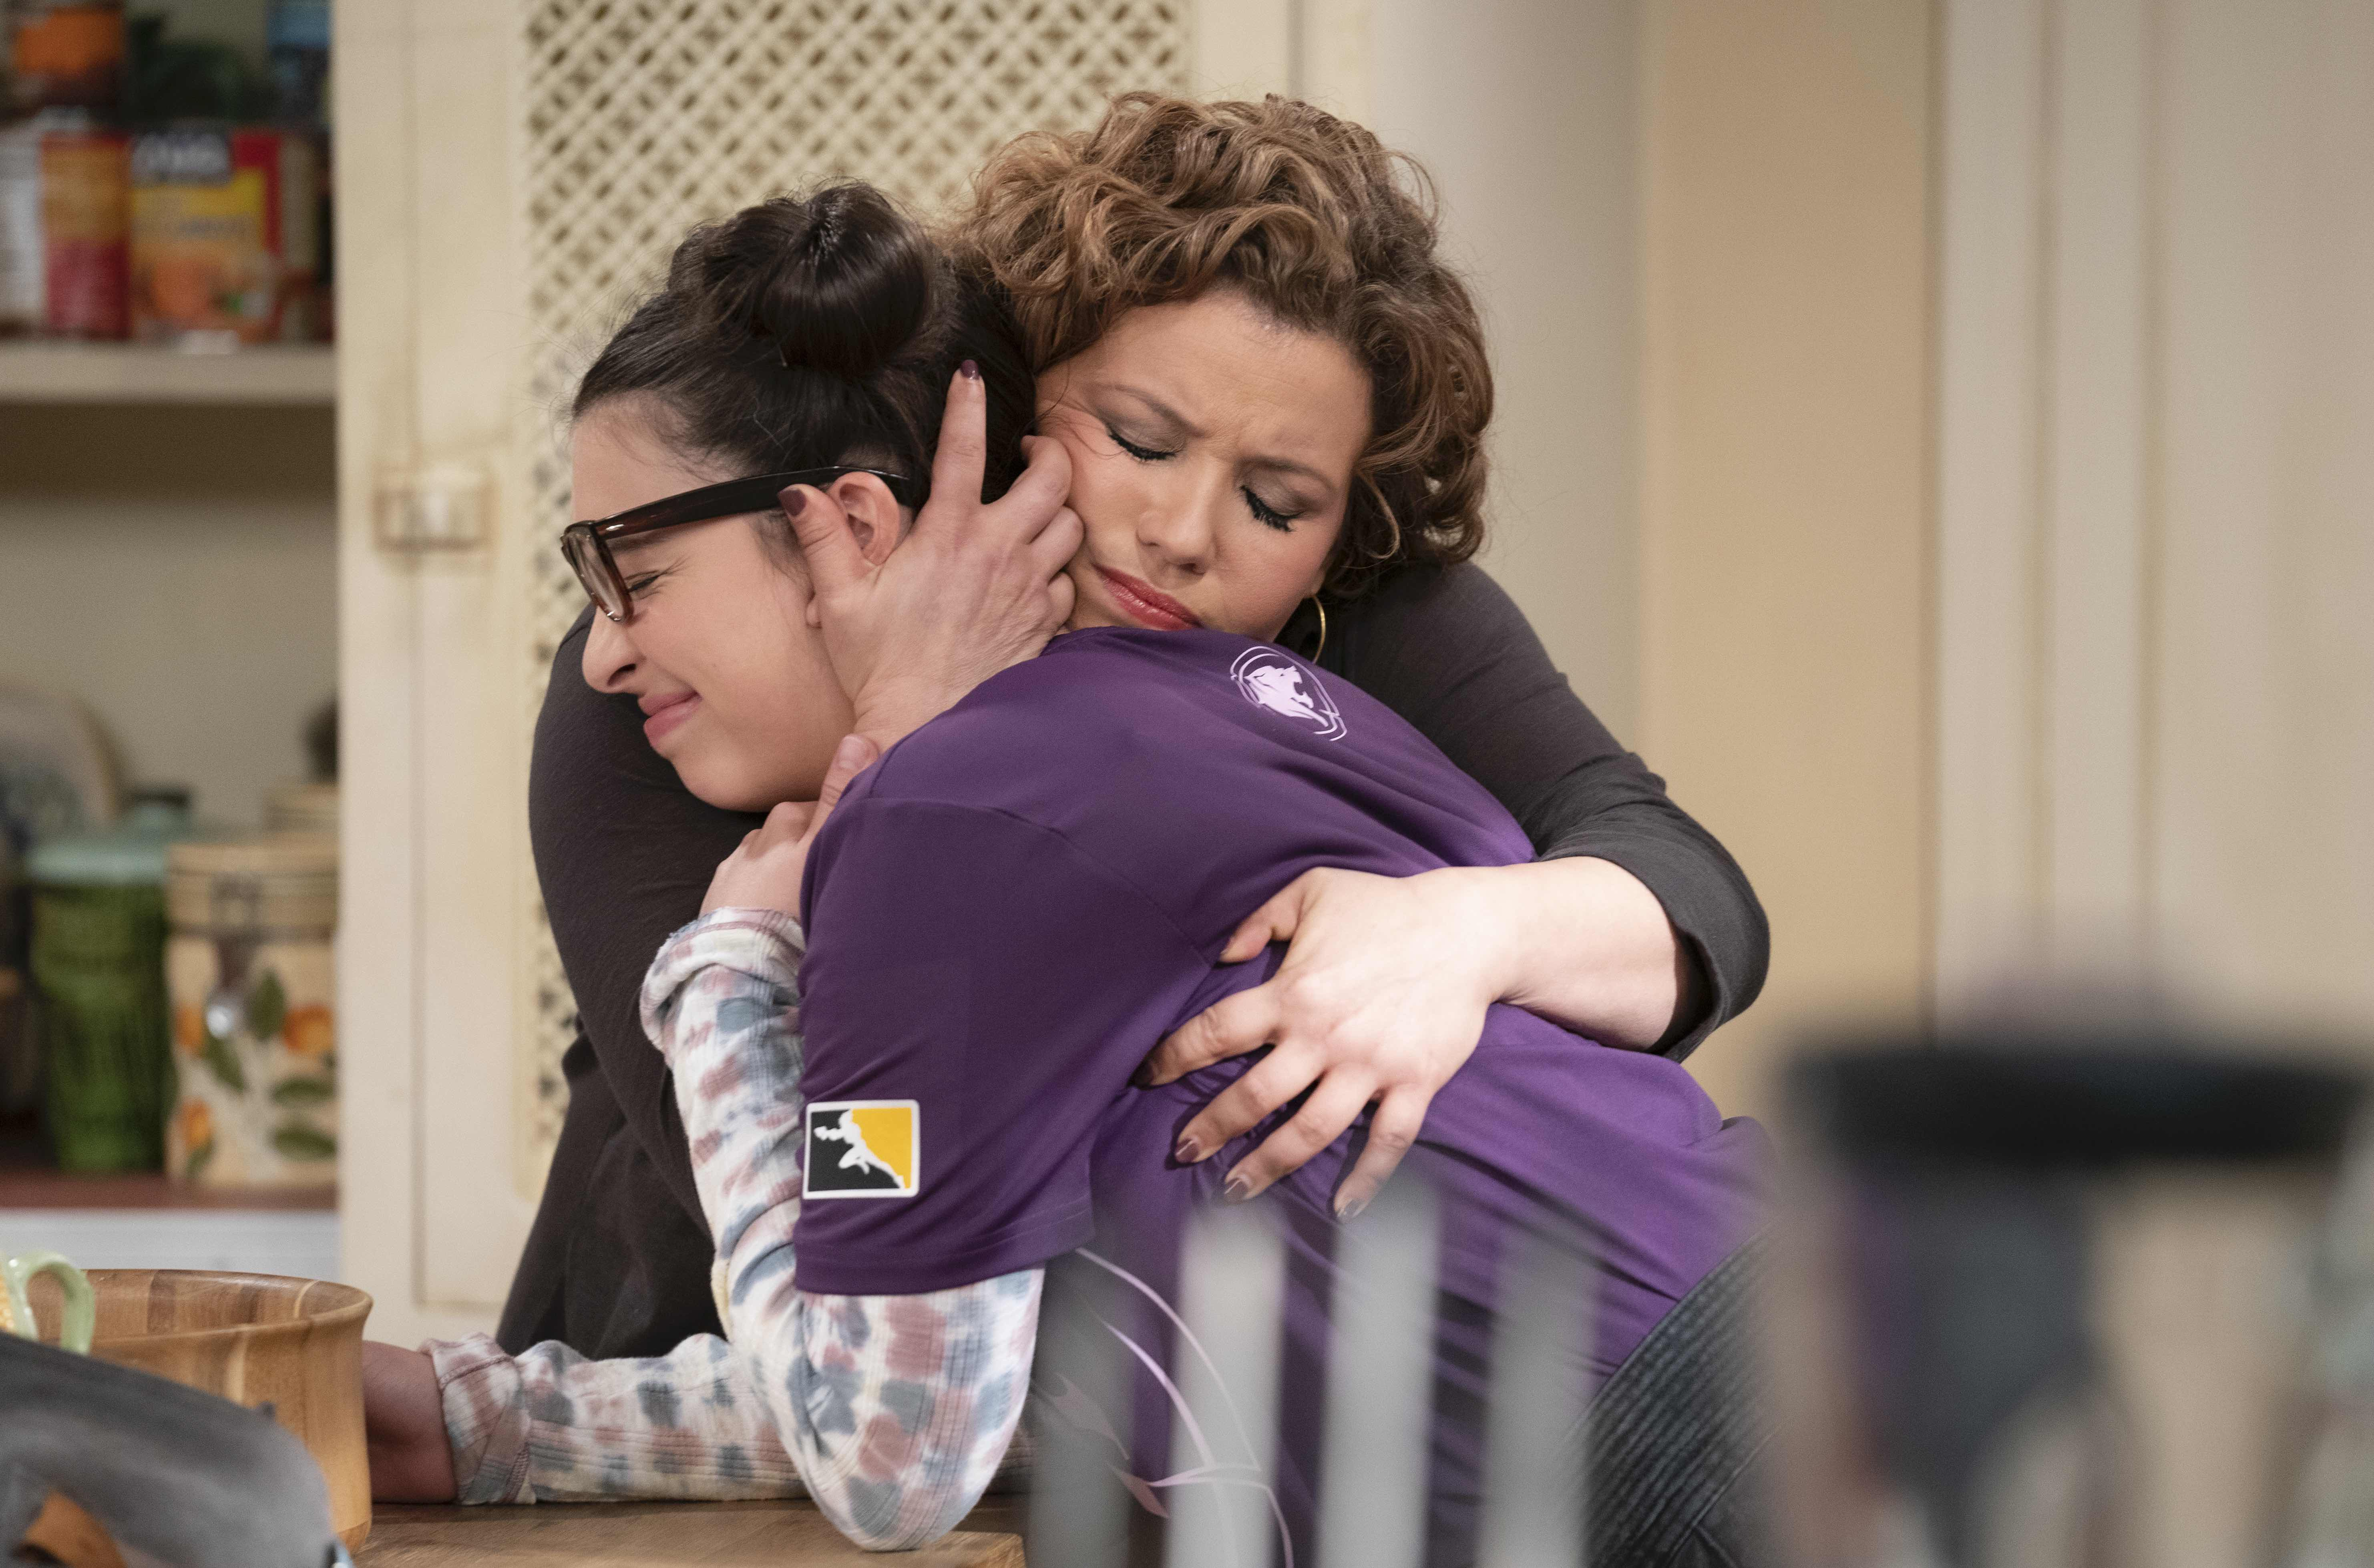 'One Day at a Time' Returns Better Than Ever Just in Time to Soothe Us All